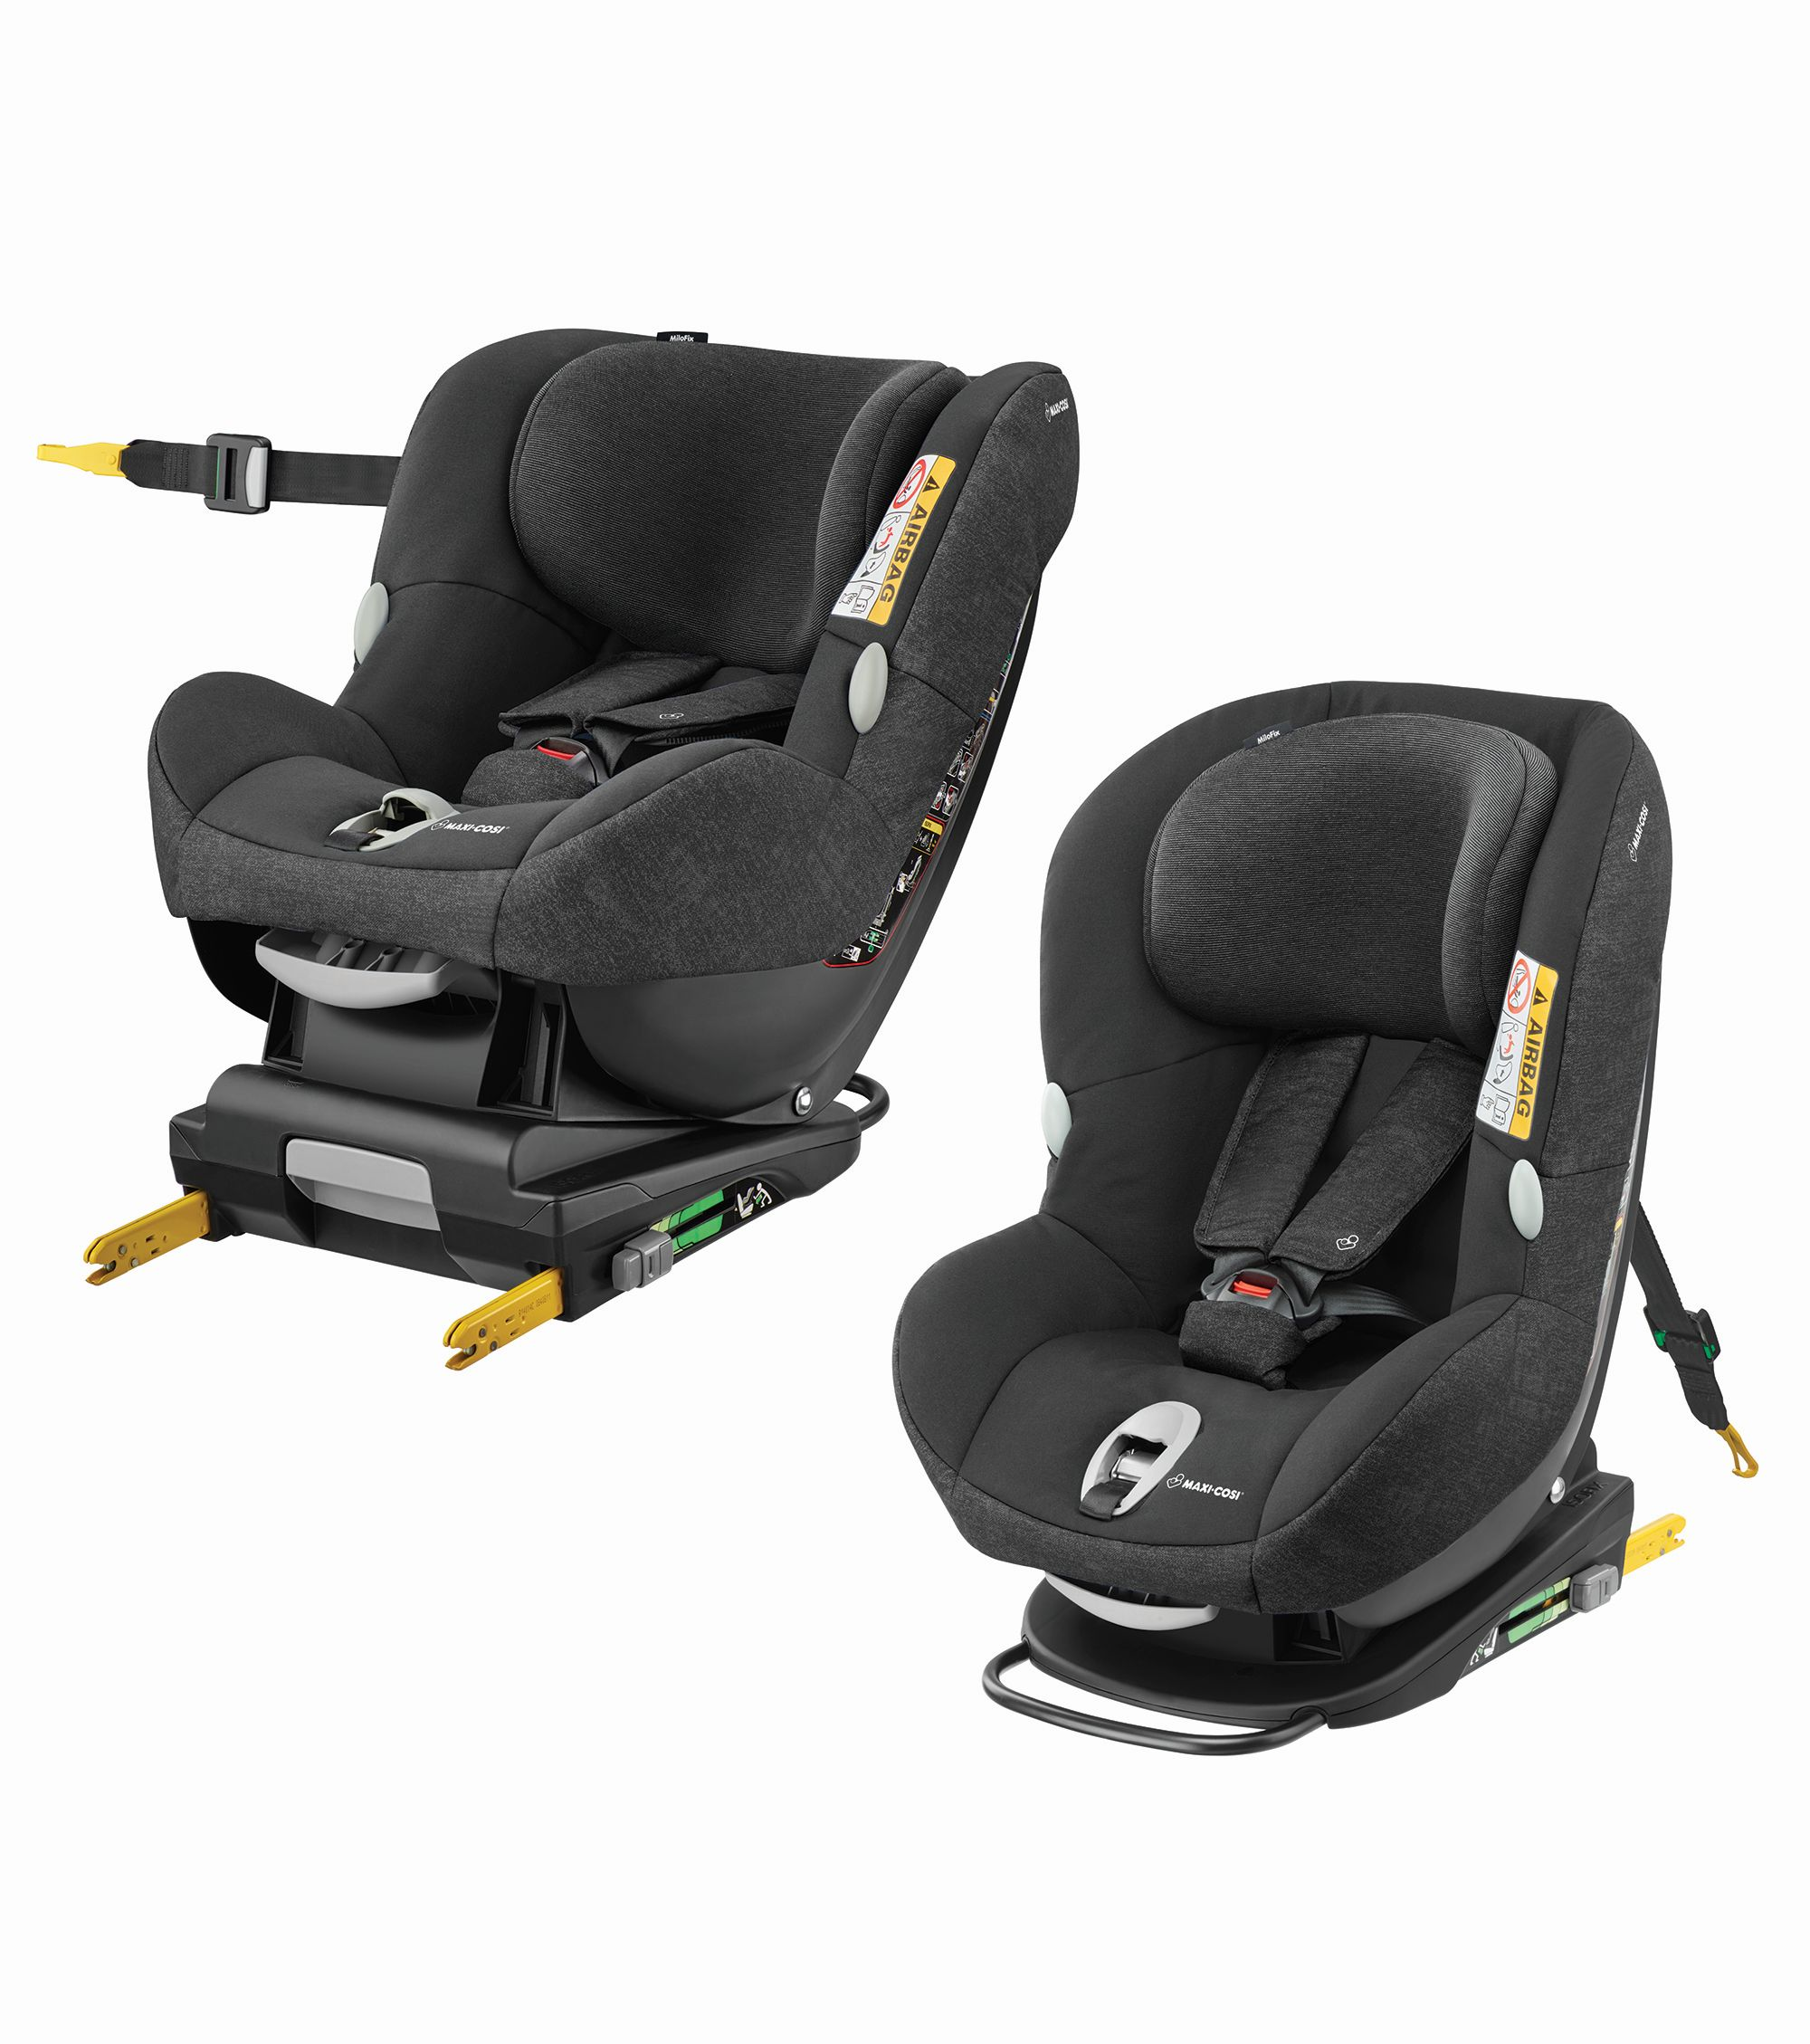 maxi cosi child car seat milofix 2018 nomad black buy at kidsroom car seats isofix child. Black Bedroom Furniture Sets. Home Design Ideas